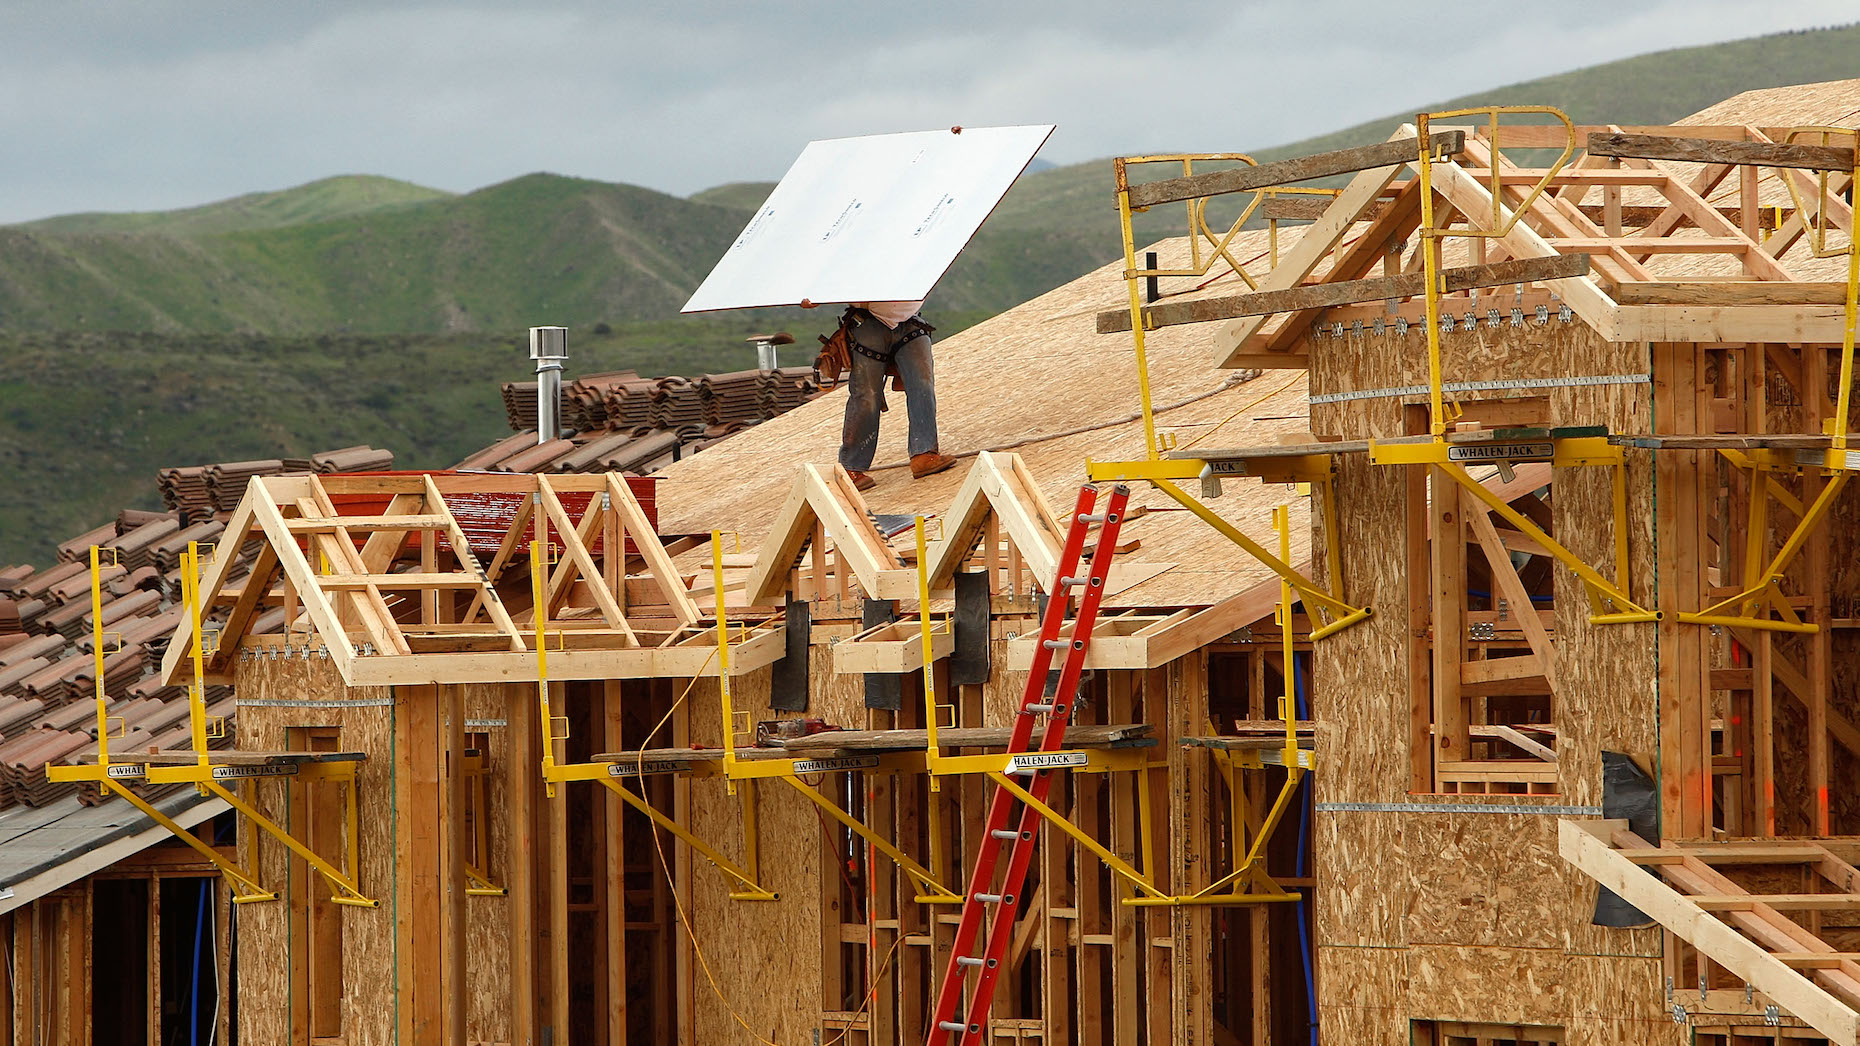 Home sales will cool off for the rest of this year and next: Fannie Mae